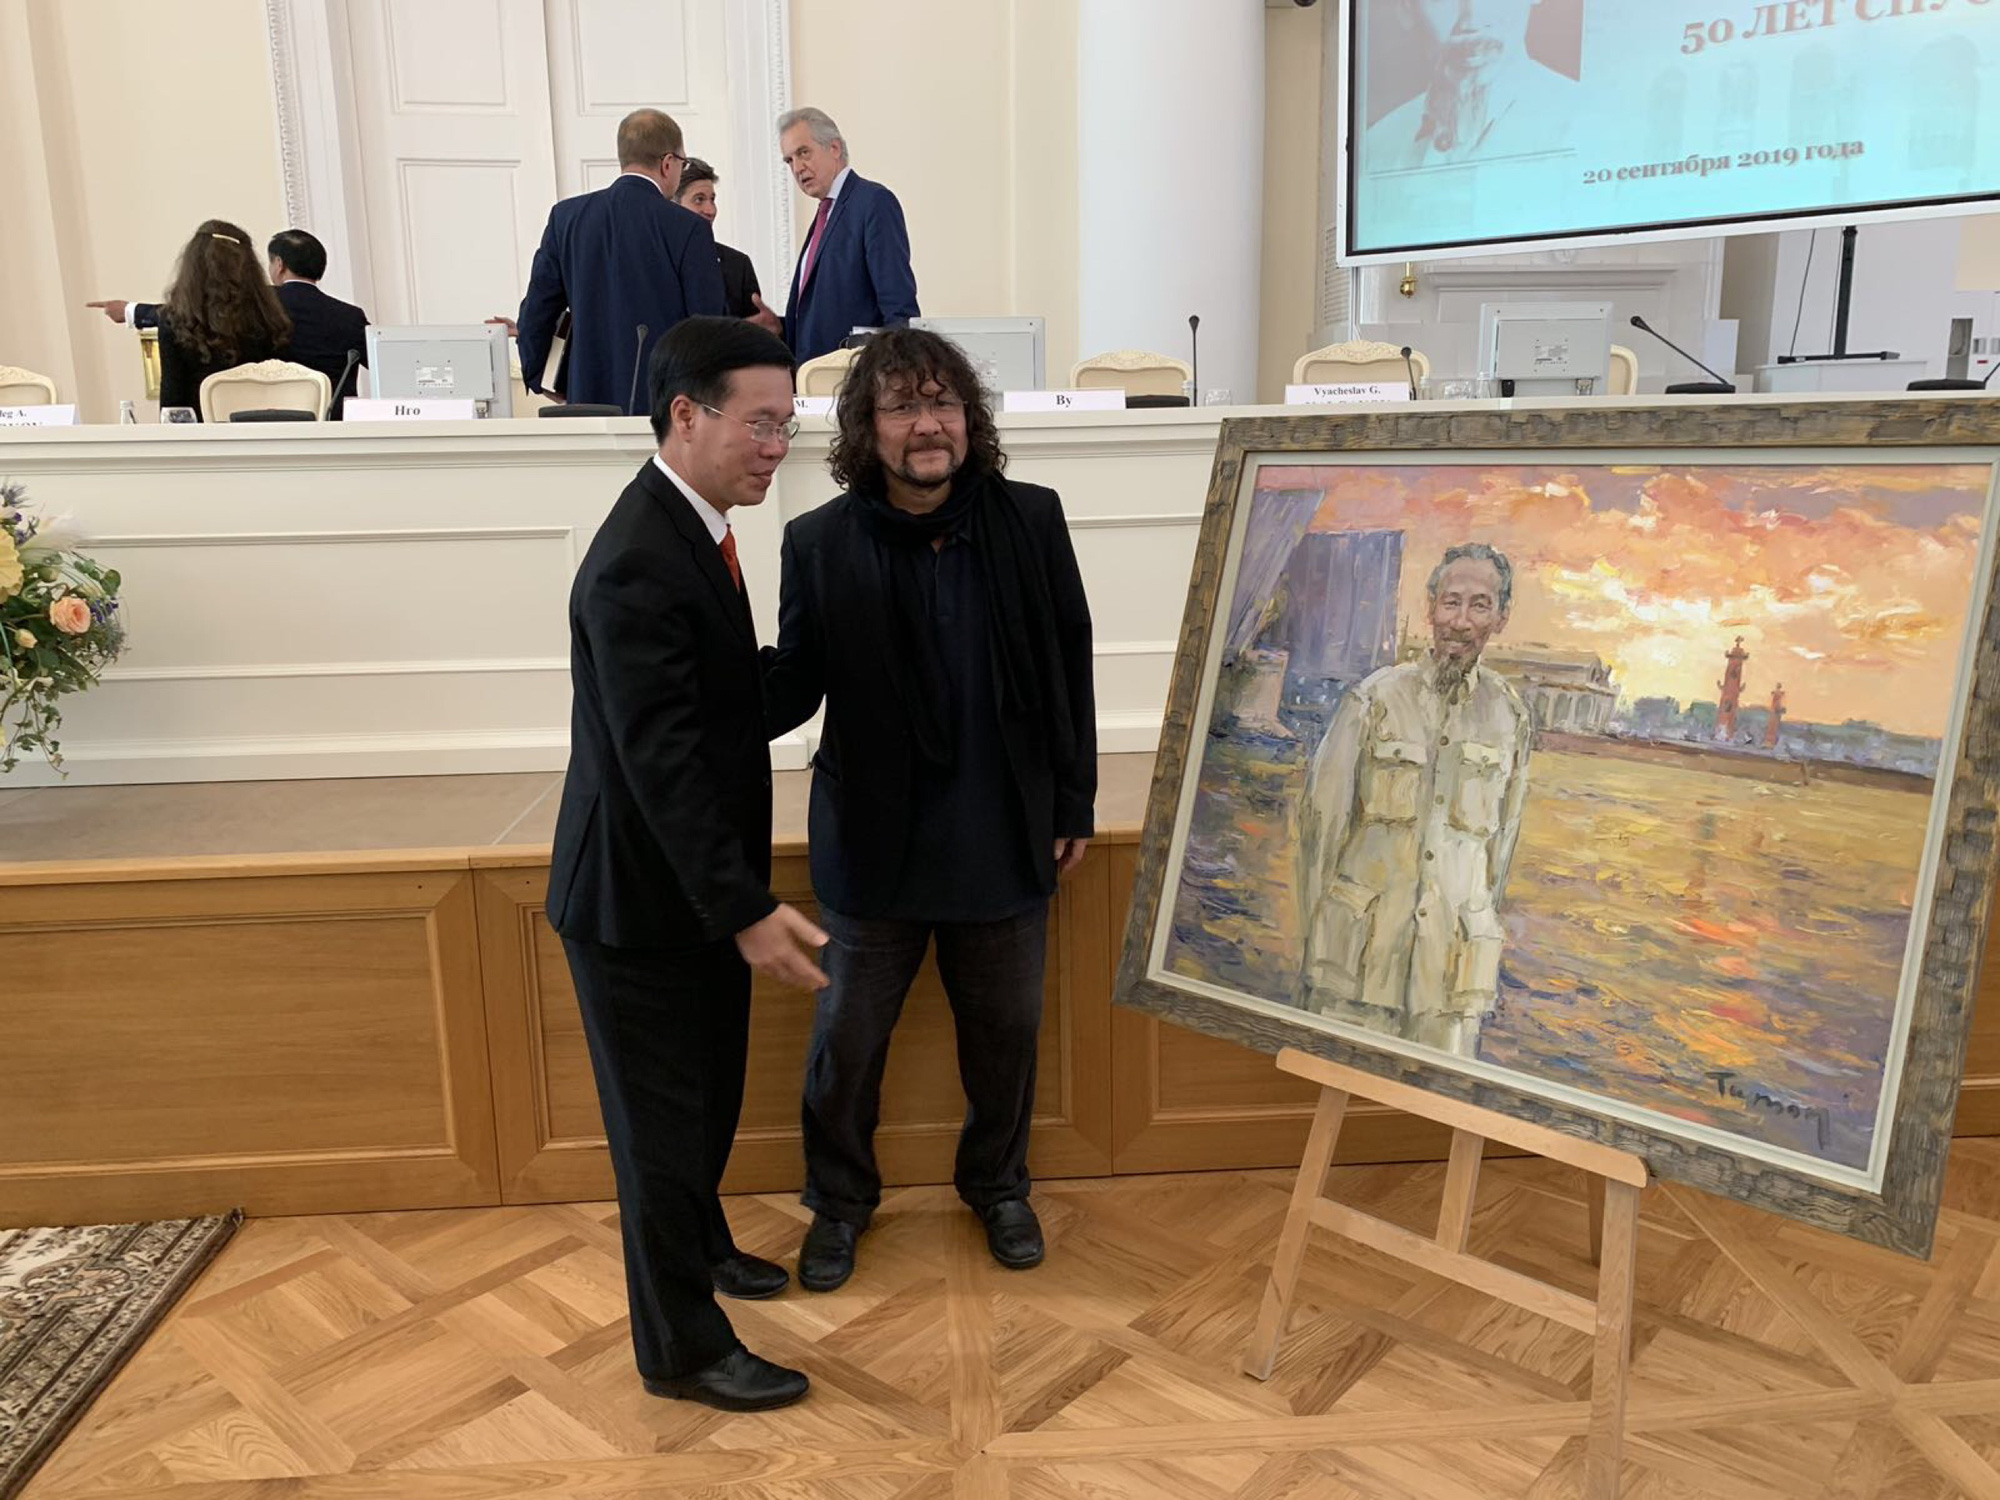 Russian artist Tuman Zhumabaev (right) and Vo Van Thuong, head of the Central Party Committee's Propaganda and Education, stand in front of one of Zhumabaev's paintings depicting late Vietnamese President Ho Chi Minh, which was presented as a gift to the delegation of Vietnamese leaders during their visit to Russia in this photo captured on February 20, 2019 and provided by Lilac gallery.